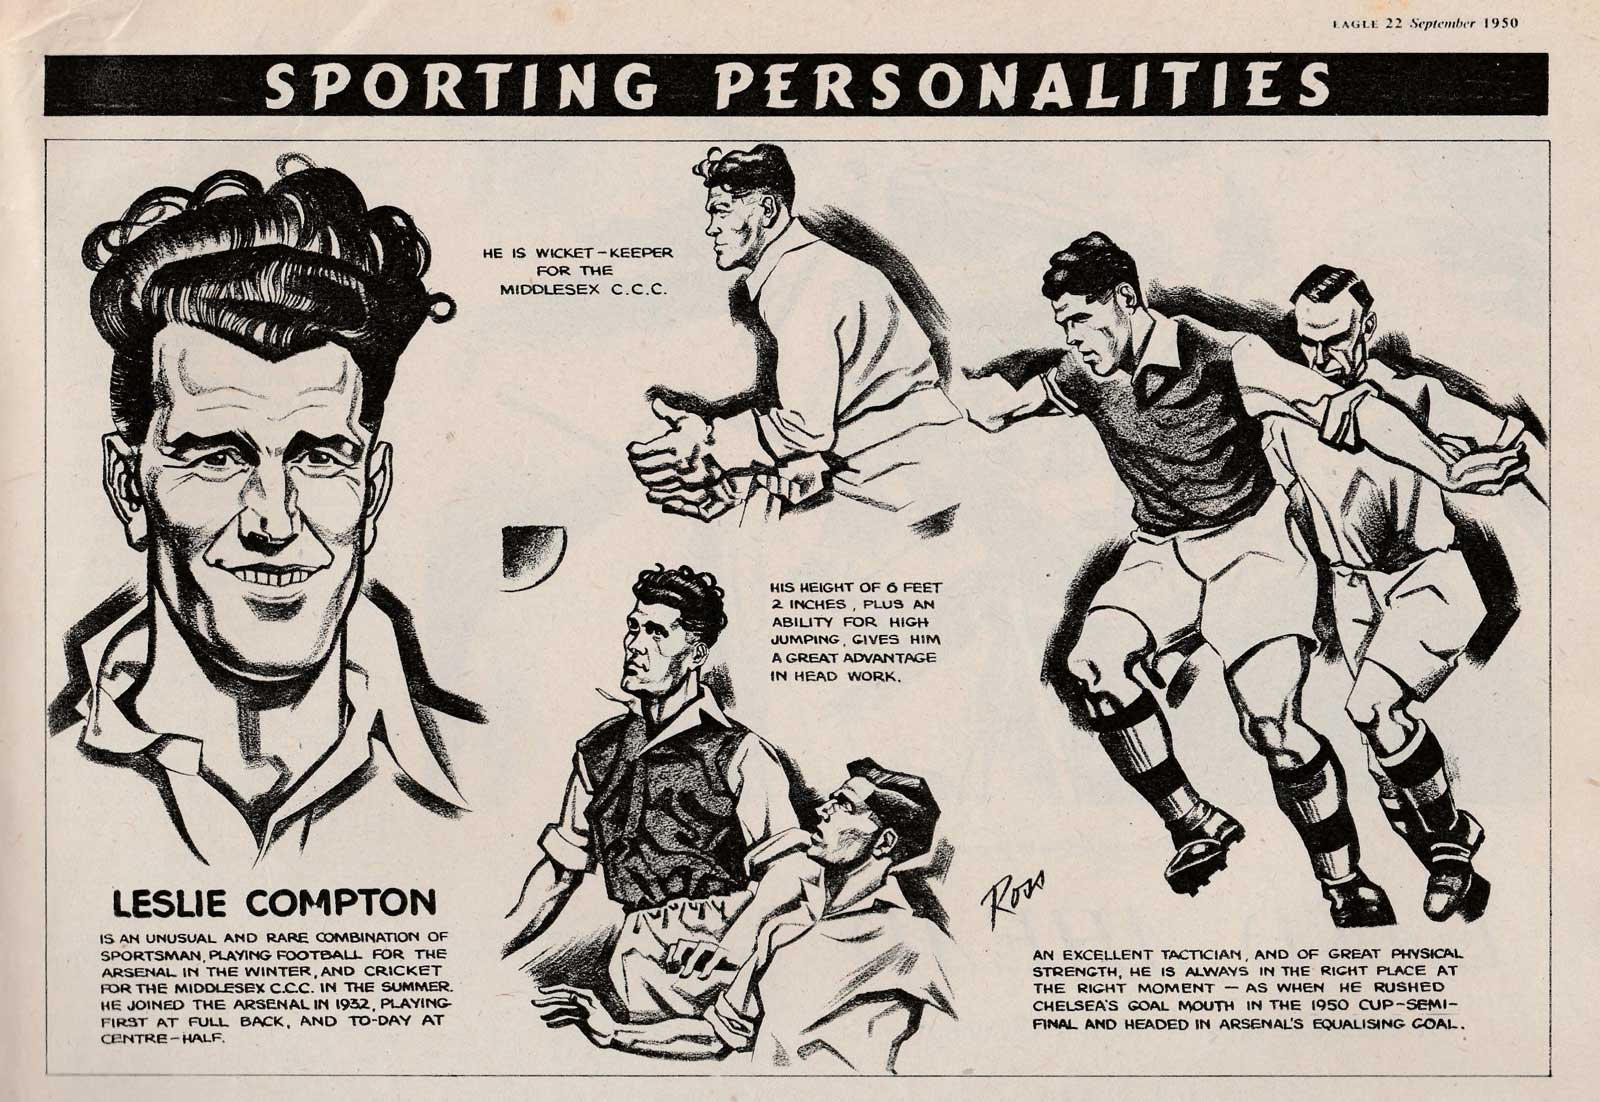 Eagle Sporting Personalities by Ross - Rom Smith - Eagle 22 September 1950